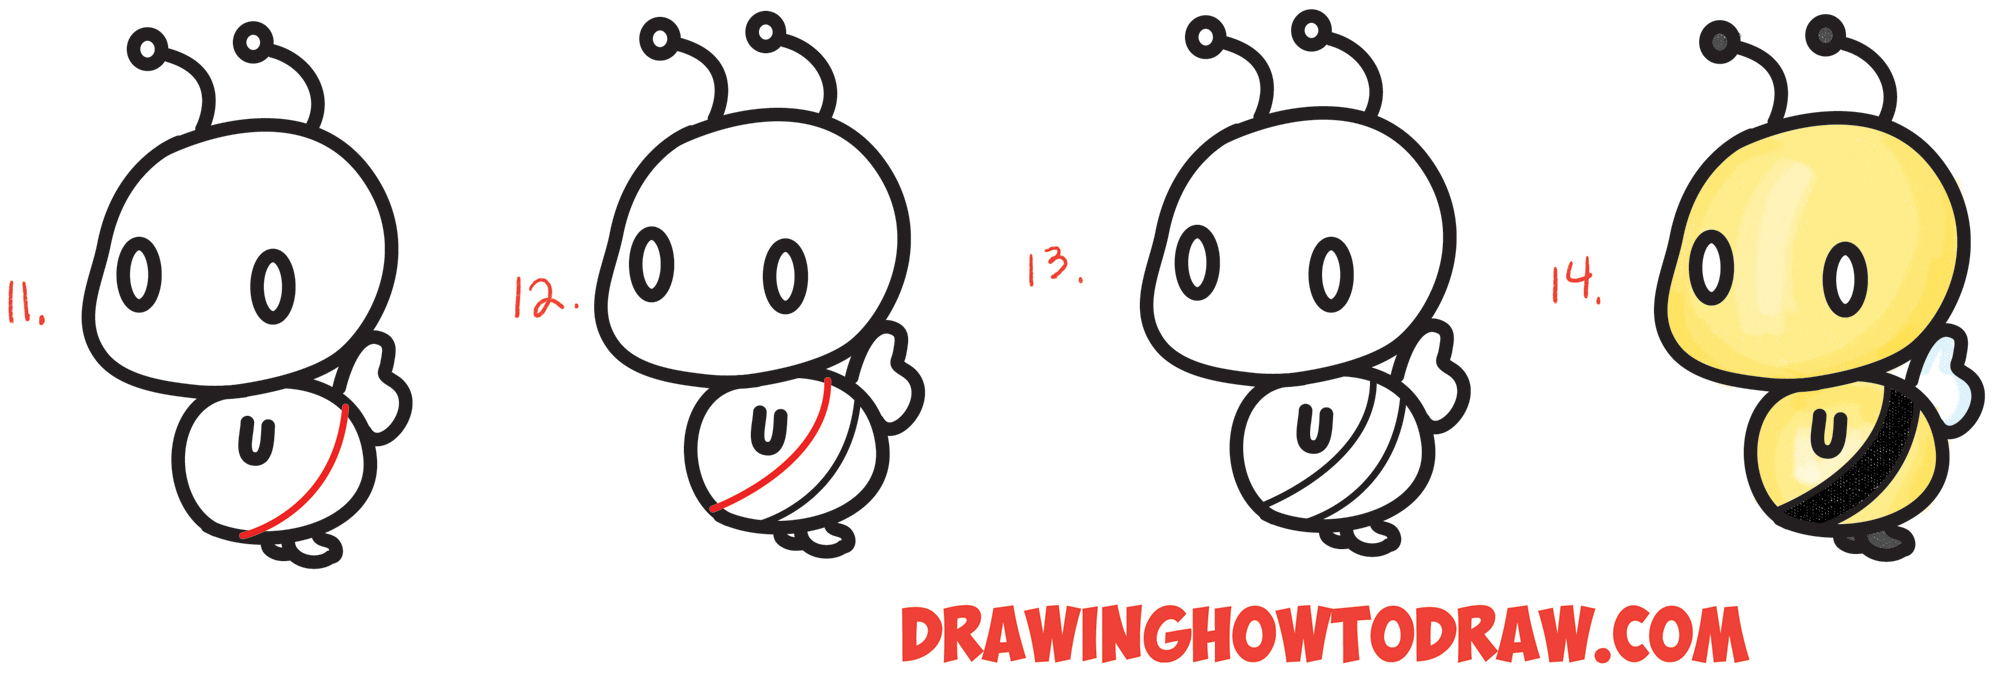 2000x677 How To Draw Cute Chibi Kawaii Characters With Number 3 Shapes